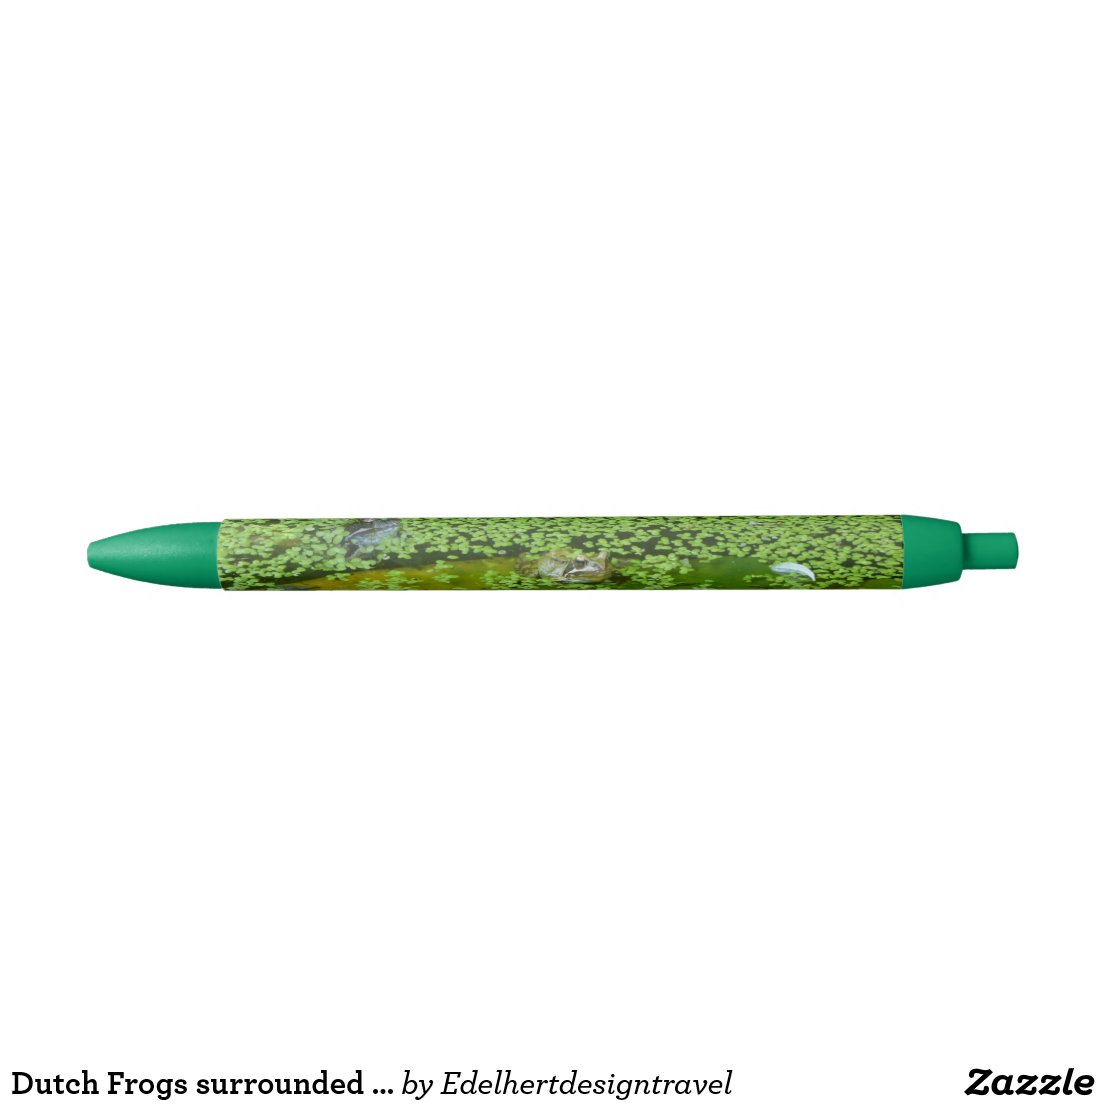 Dutch Frogs surrounded by Duckweed Pen